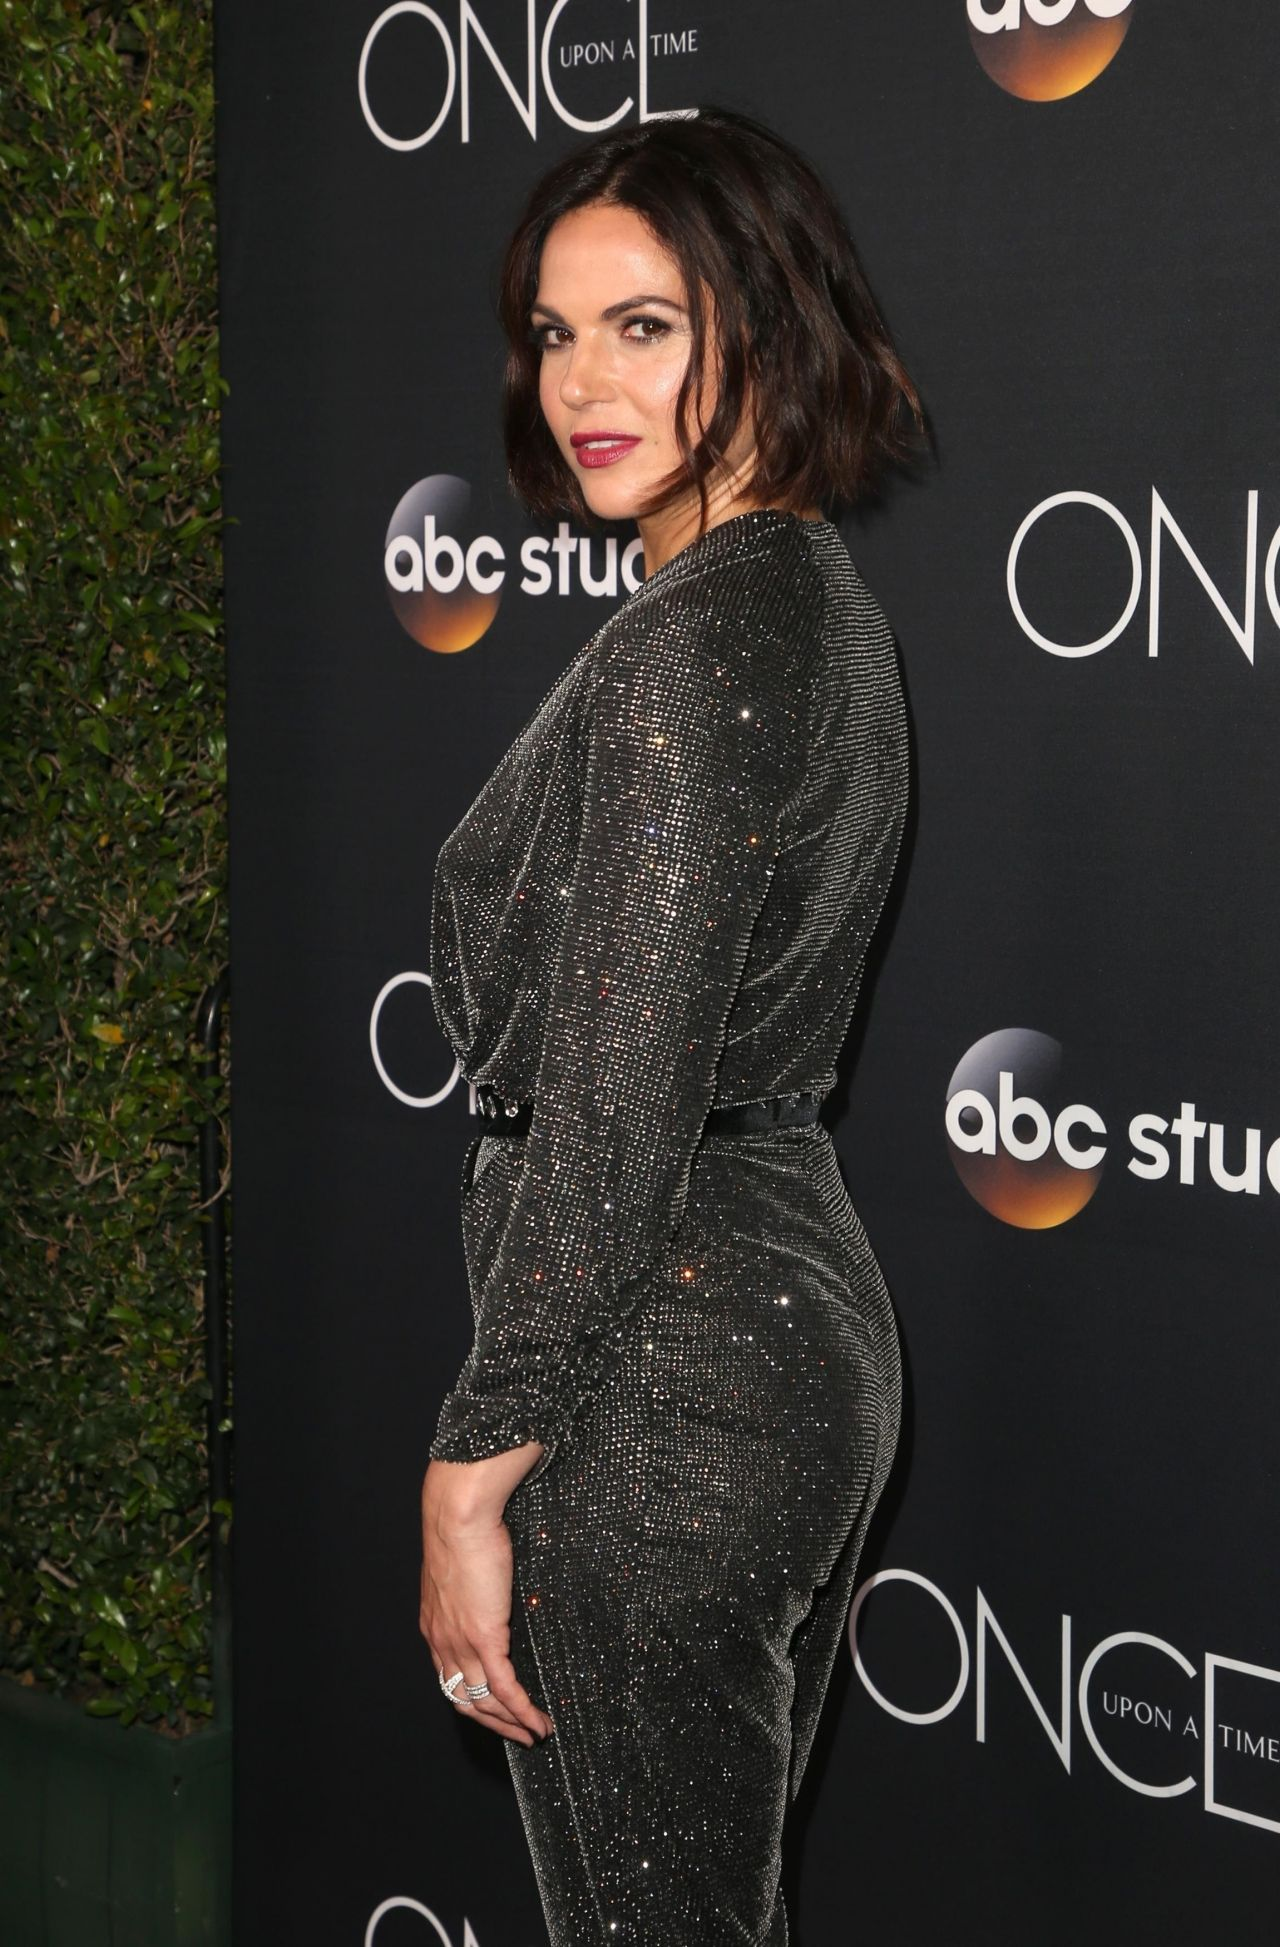 http://celebmafia.com/wp-content/uploads/2018/05/lana-parrilla-once-upon-a-time-finale-screening-in-la-05-08-2018-1.jpg